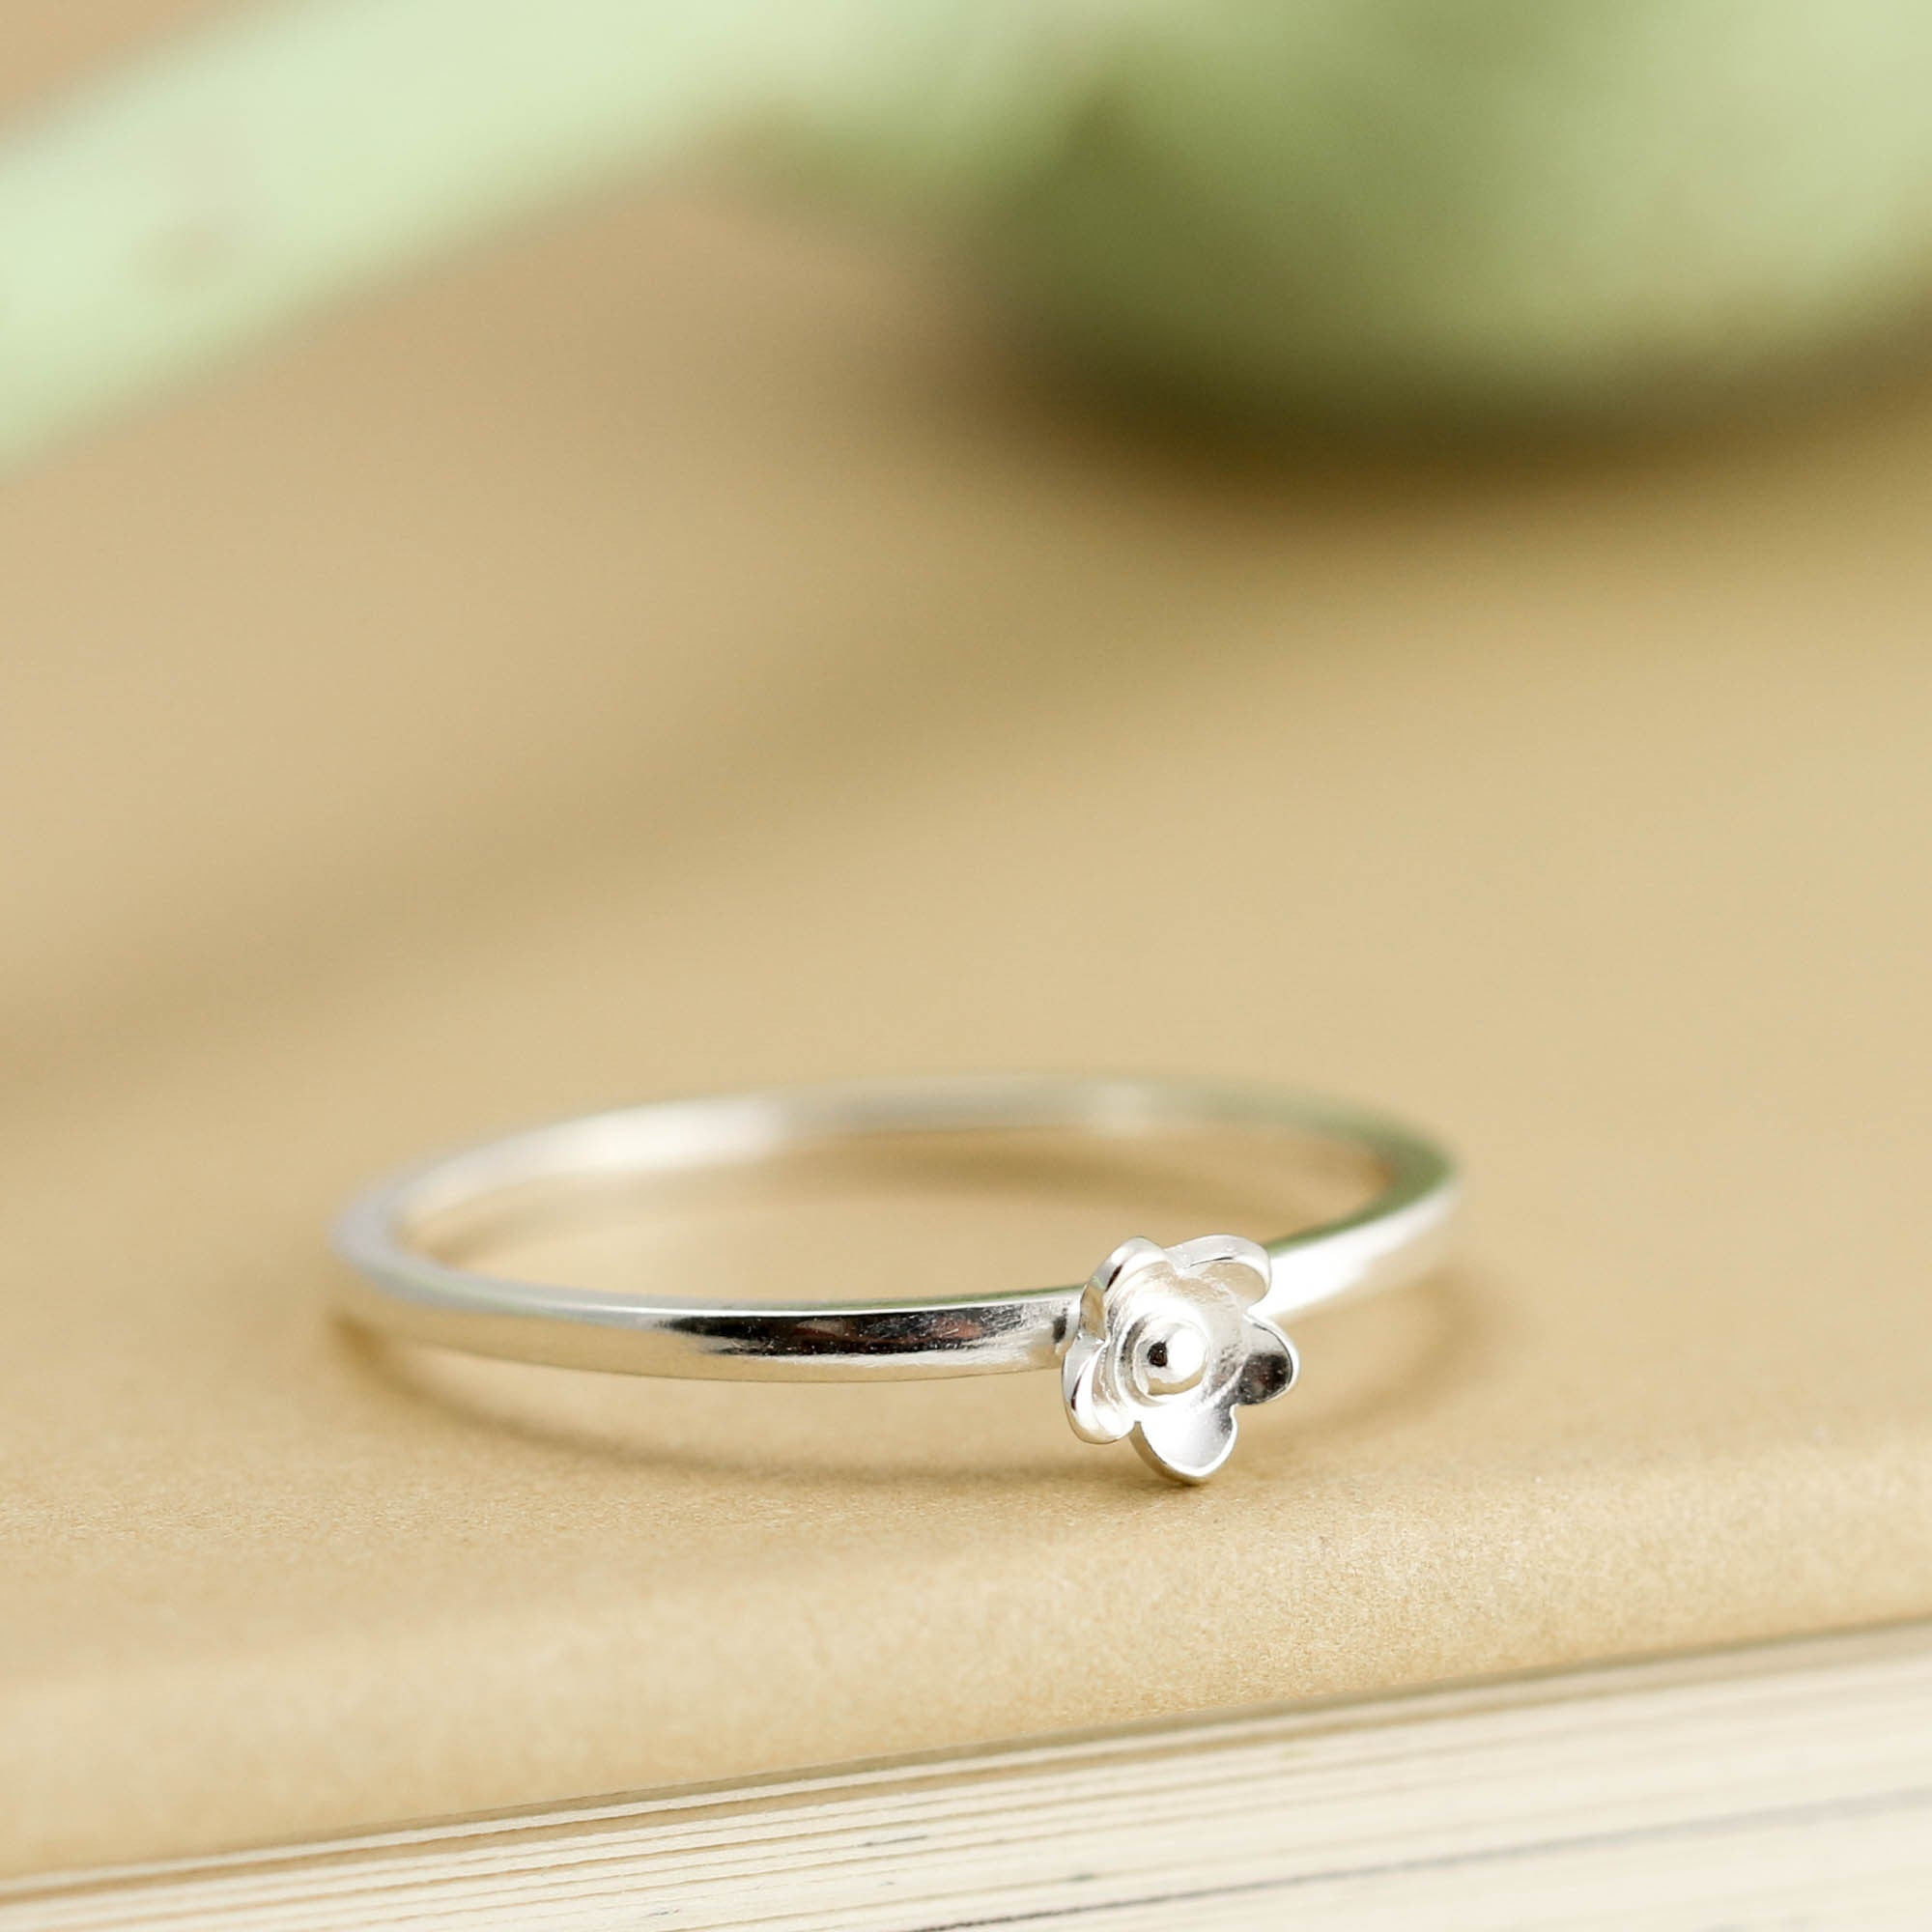 platinum custom or lover engagement ring dolphin jewelry rings takayas by pin